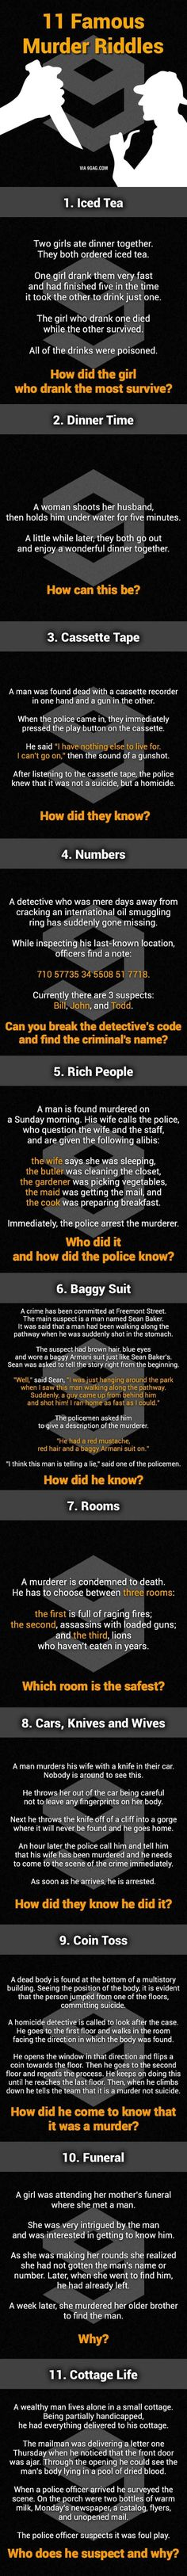 Here's some good murder riddles